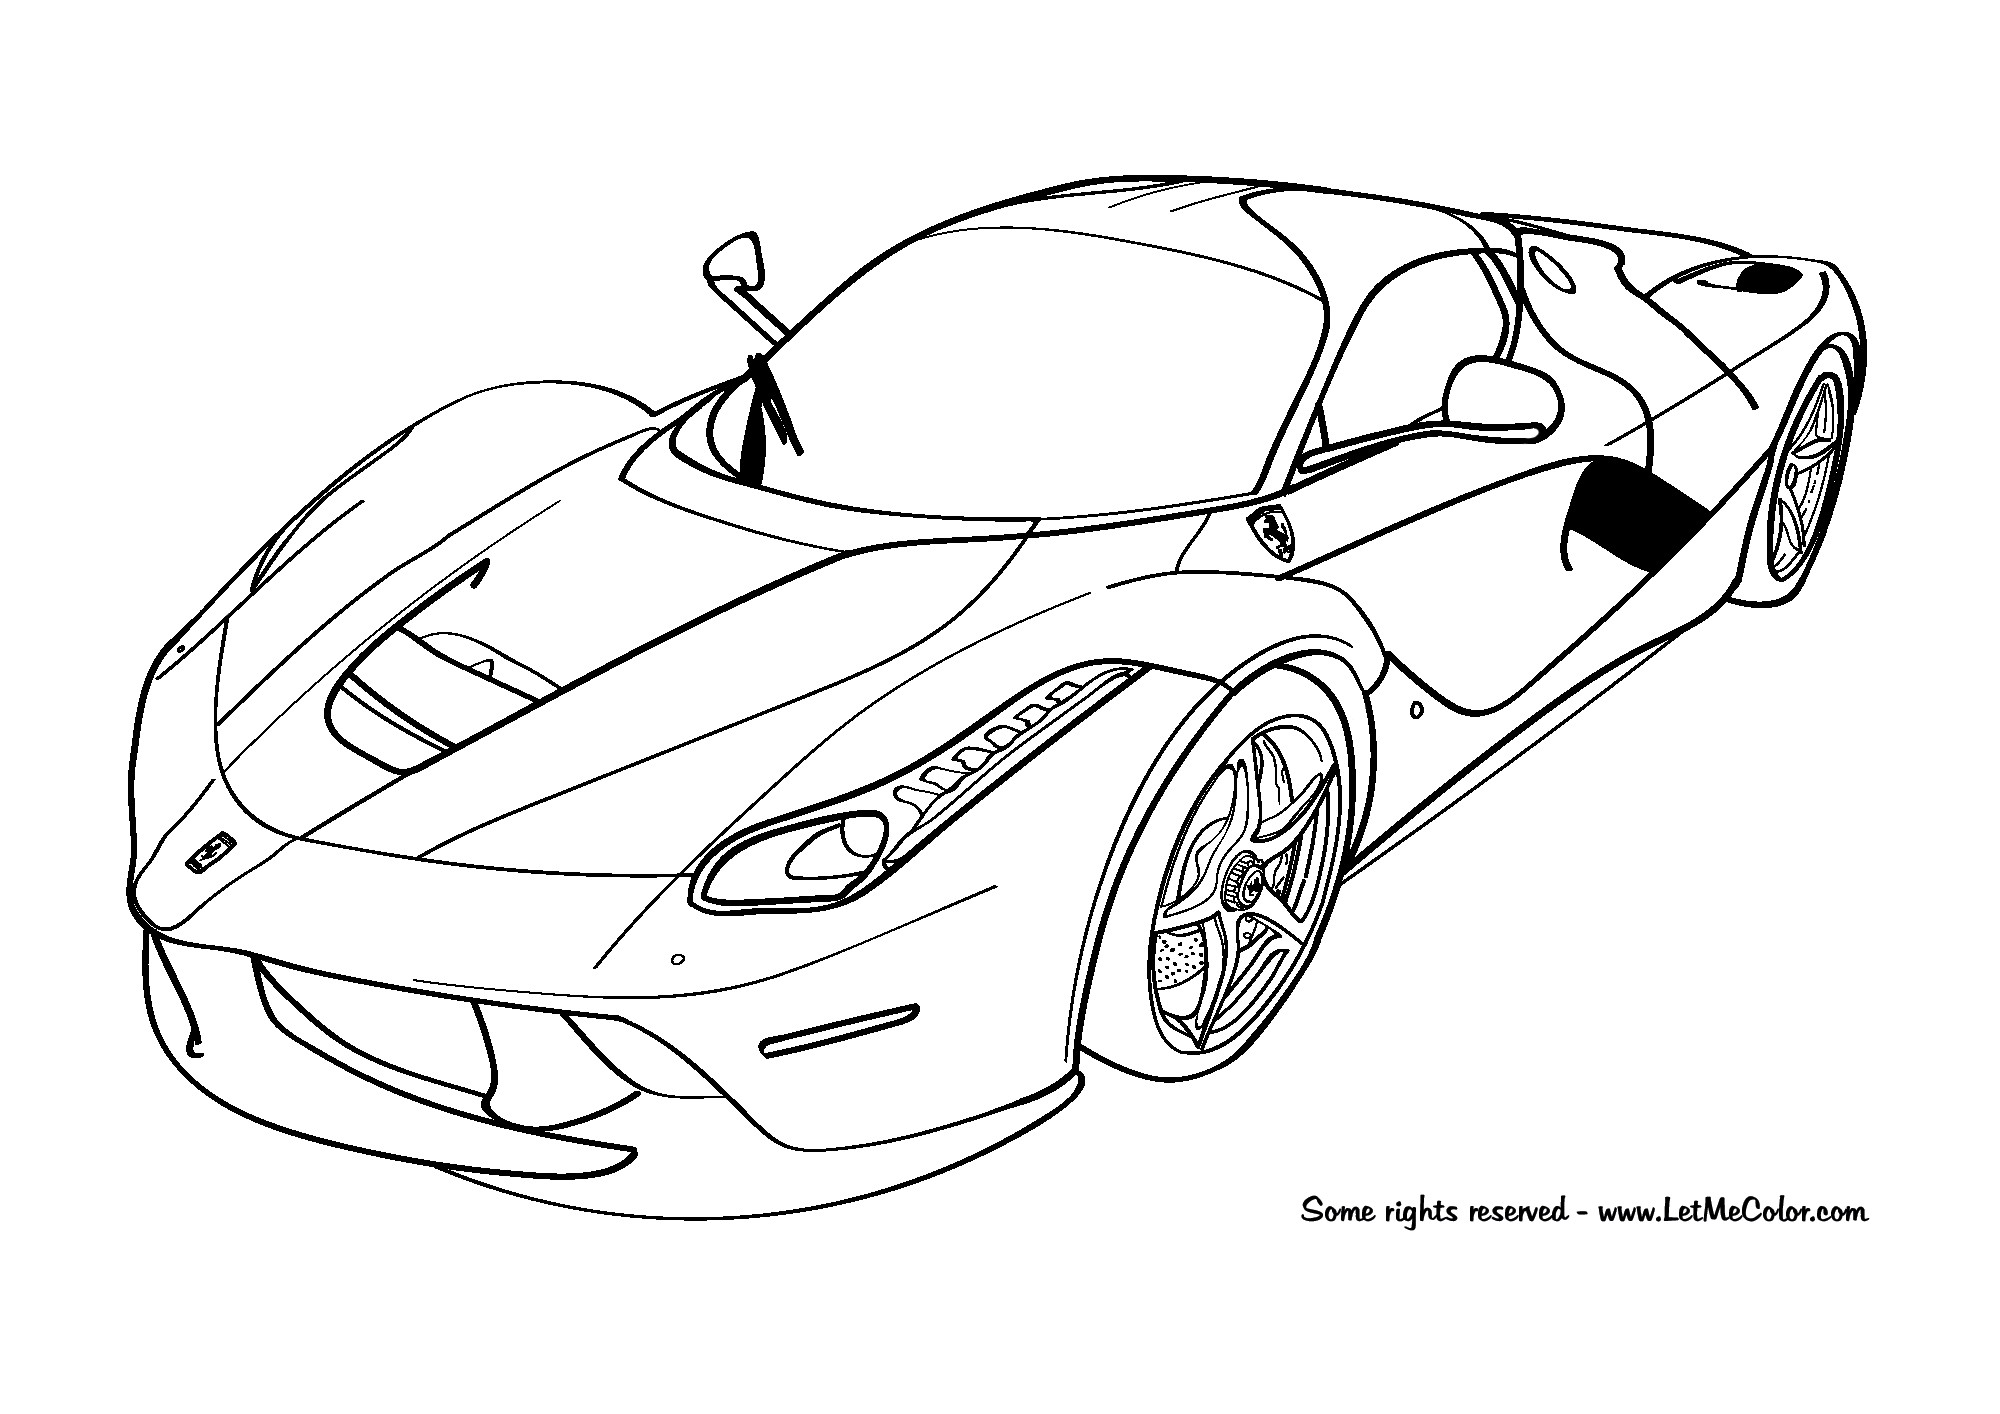 2000x1414 Super Car Ford Mustang Coloring Page Fresh Super Car Lotus Esprit